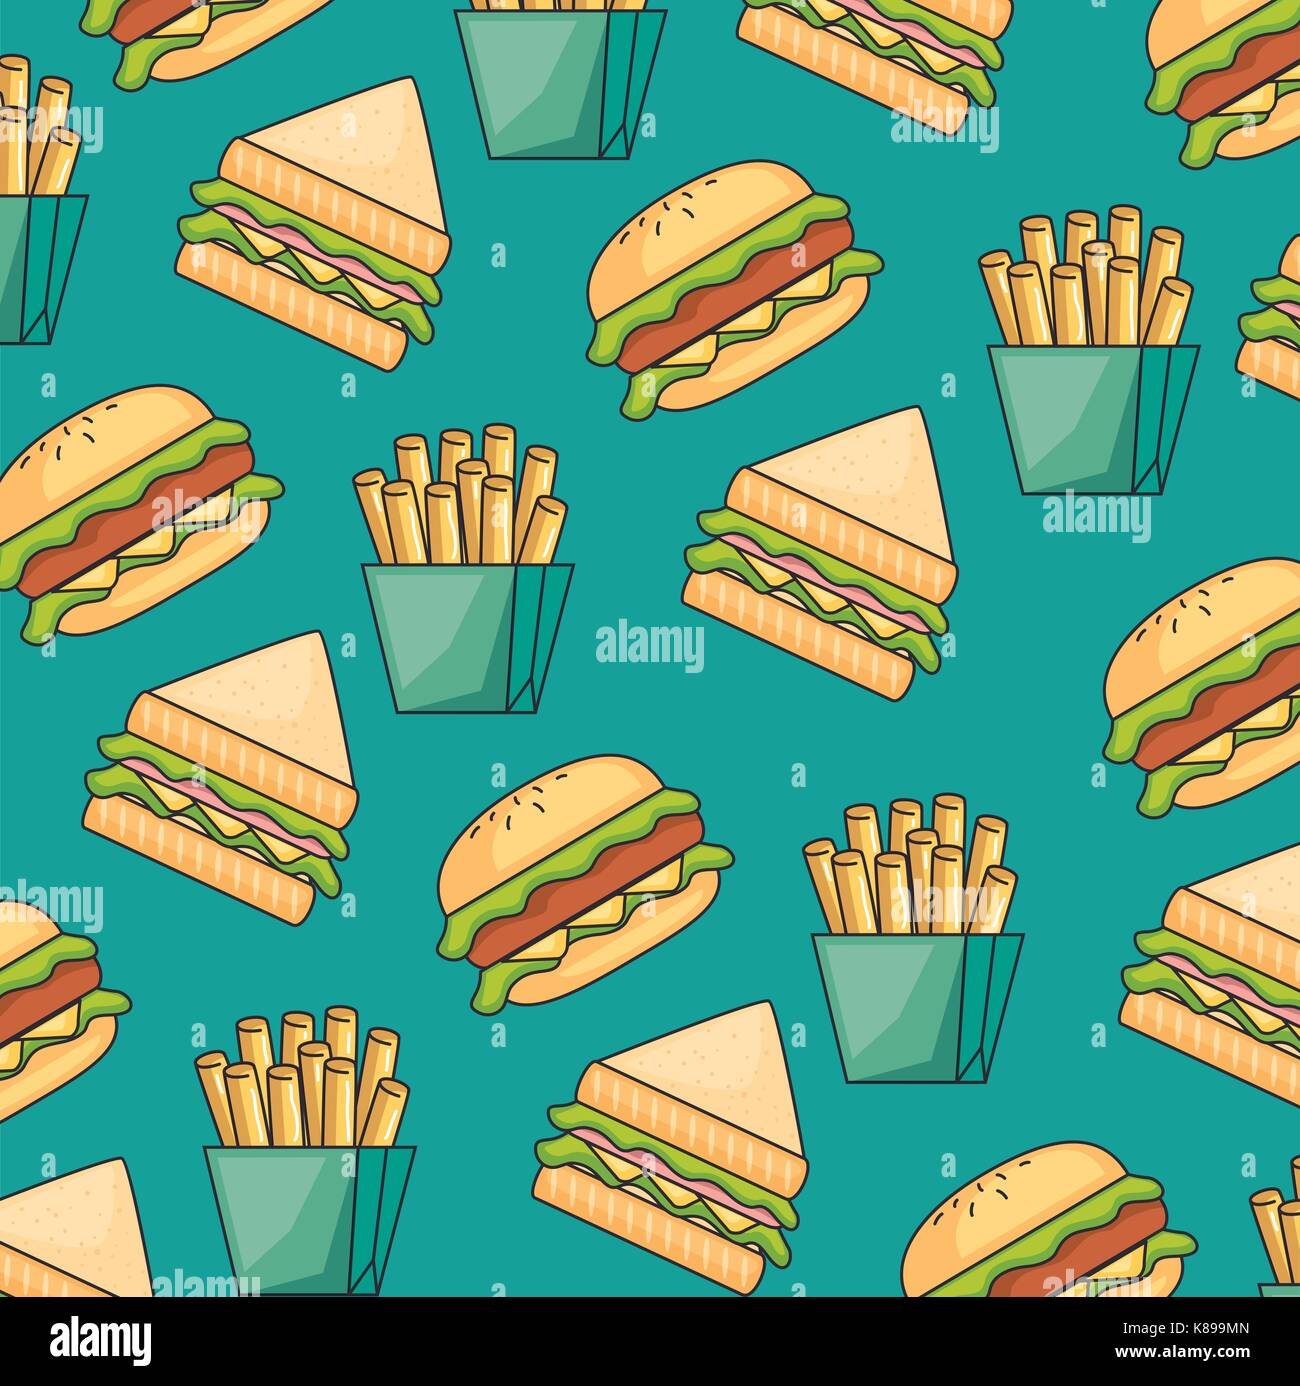 fast food seamless pattern vector illustration graphic design - Stock Vector